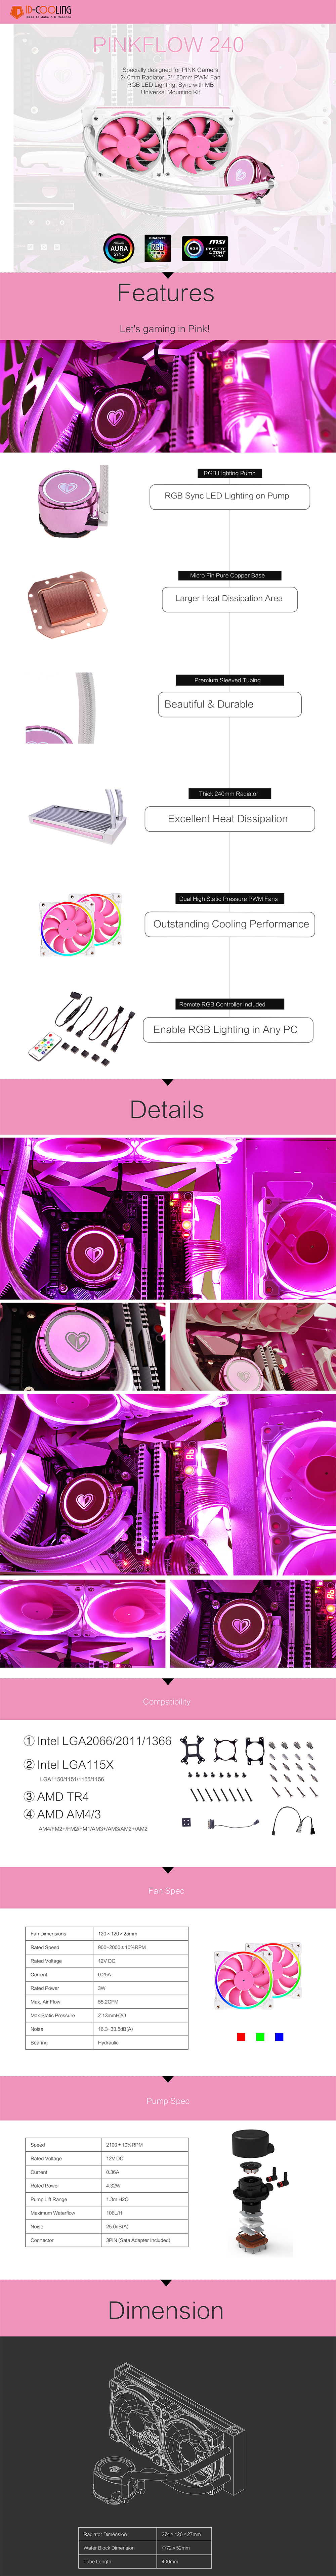 A large marketing image providing additional information about the product ID-COOLING PinkFlow 240 Addressable RGB AIO CPU Liquid Cooler - Additional alt info not provided